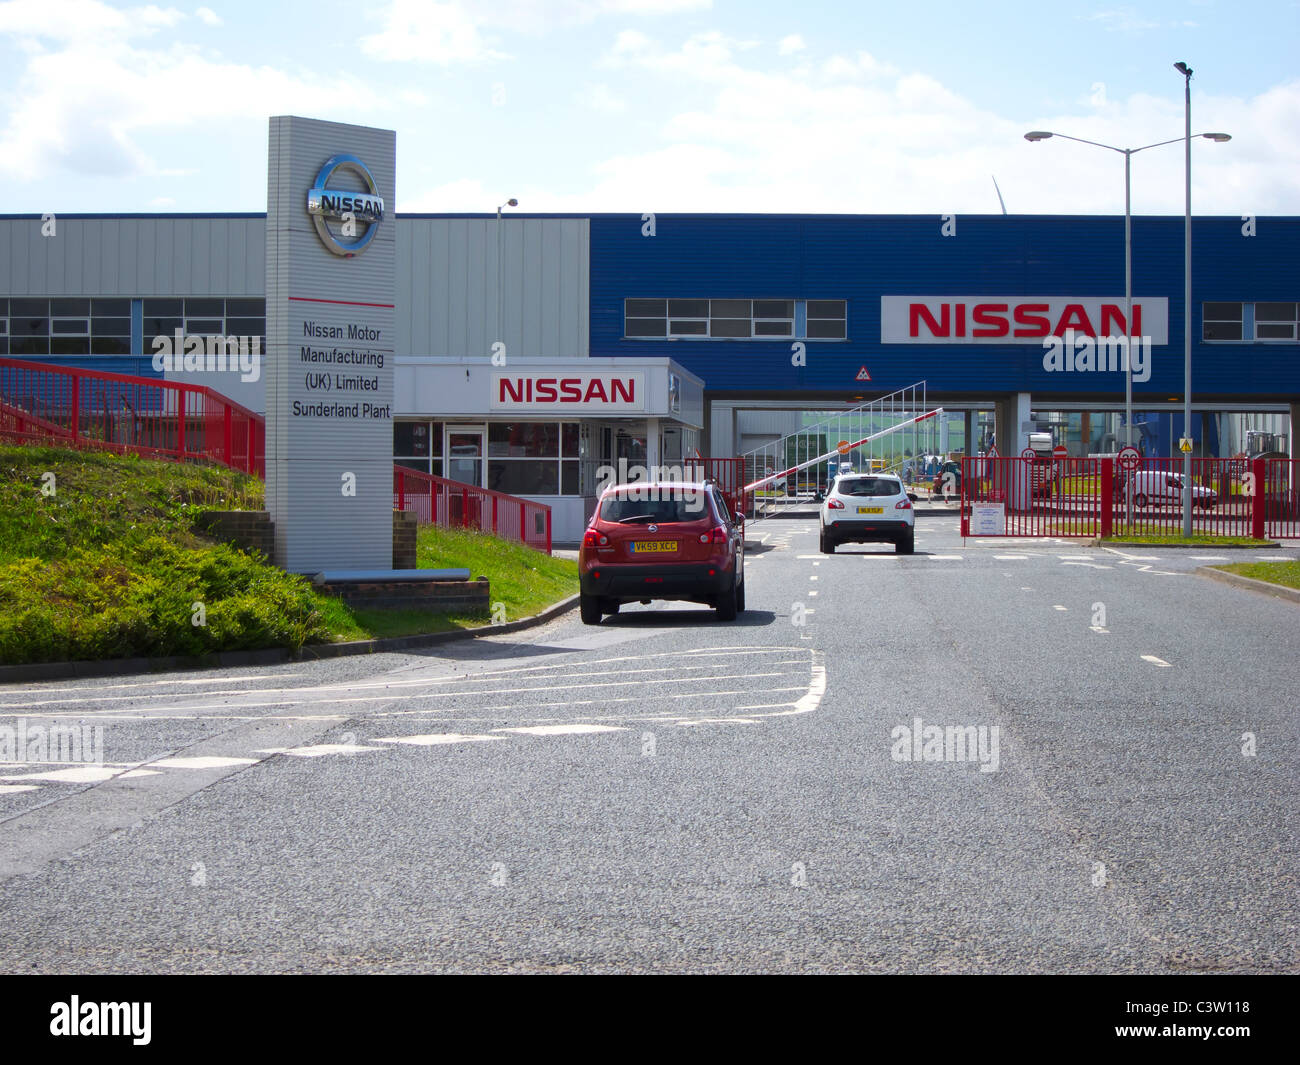 Nissan Motor Manufacturing Uk Ltd Stock Photo Royalty